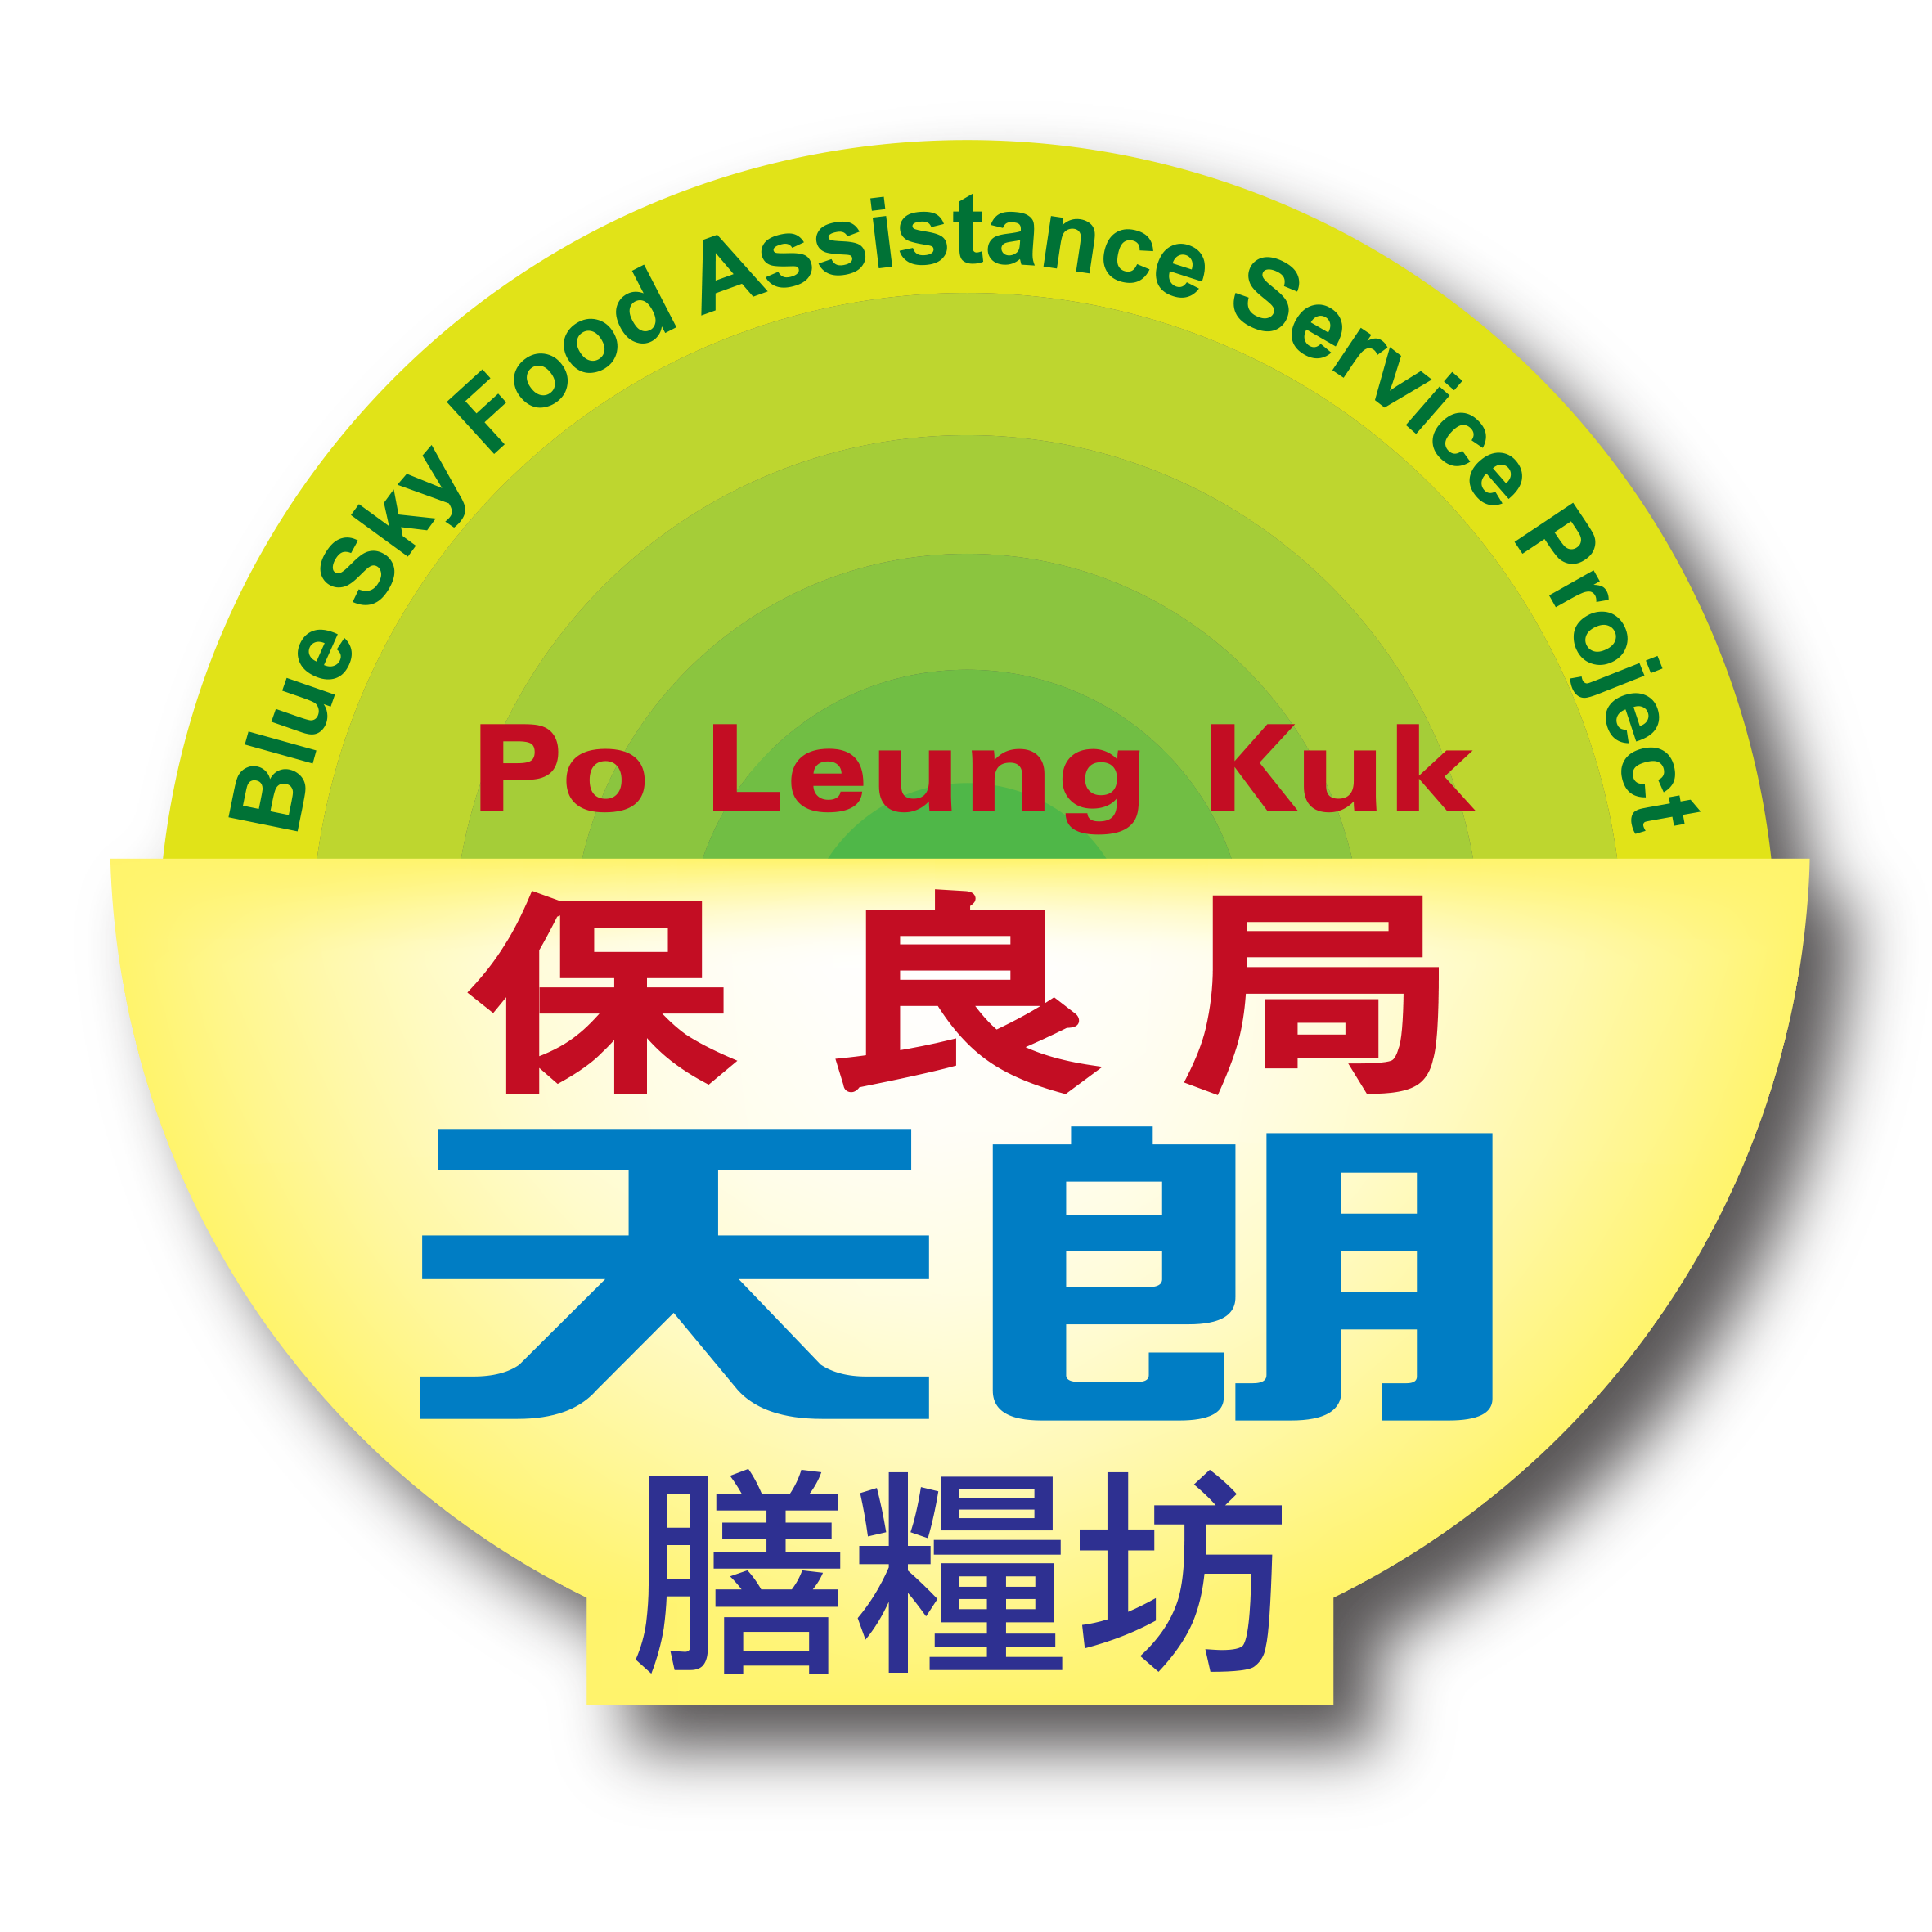 Po Leung Kuk Blue Sky Food Assistance Service Project